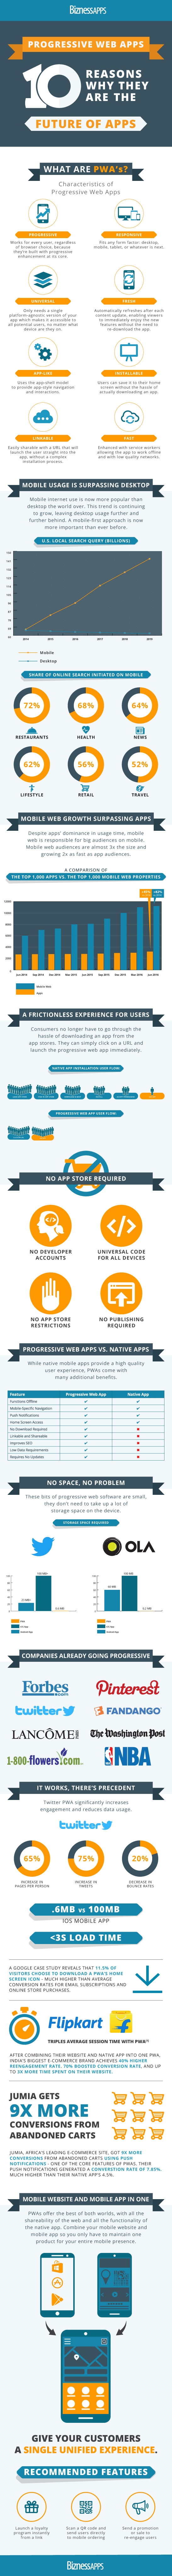 pwa infographic  10 Reasons Why PWAs Are On The Rise [Infographic] - Progressive Web App Infographic - 10 Reasons Why PWAs Are On The Rise [Infographic]